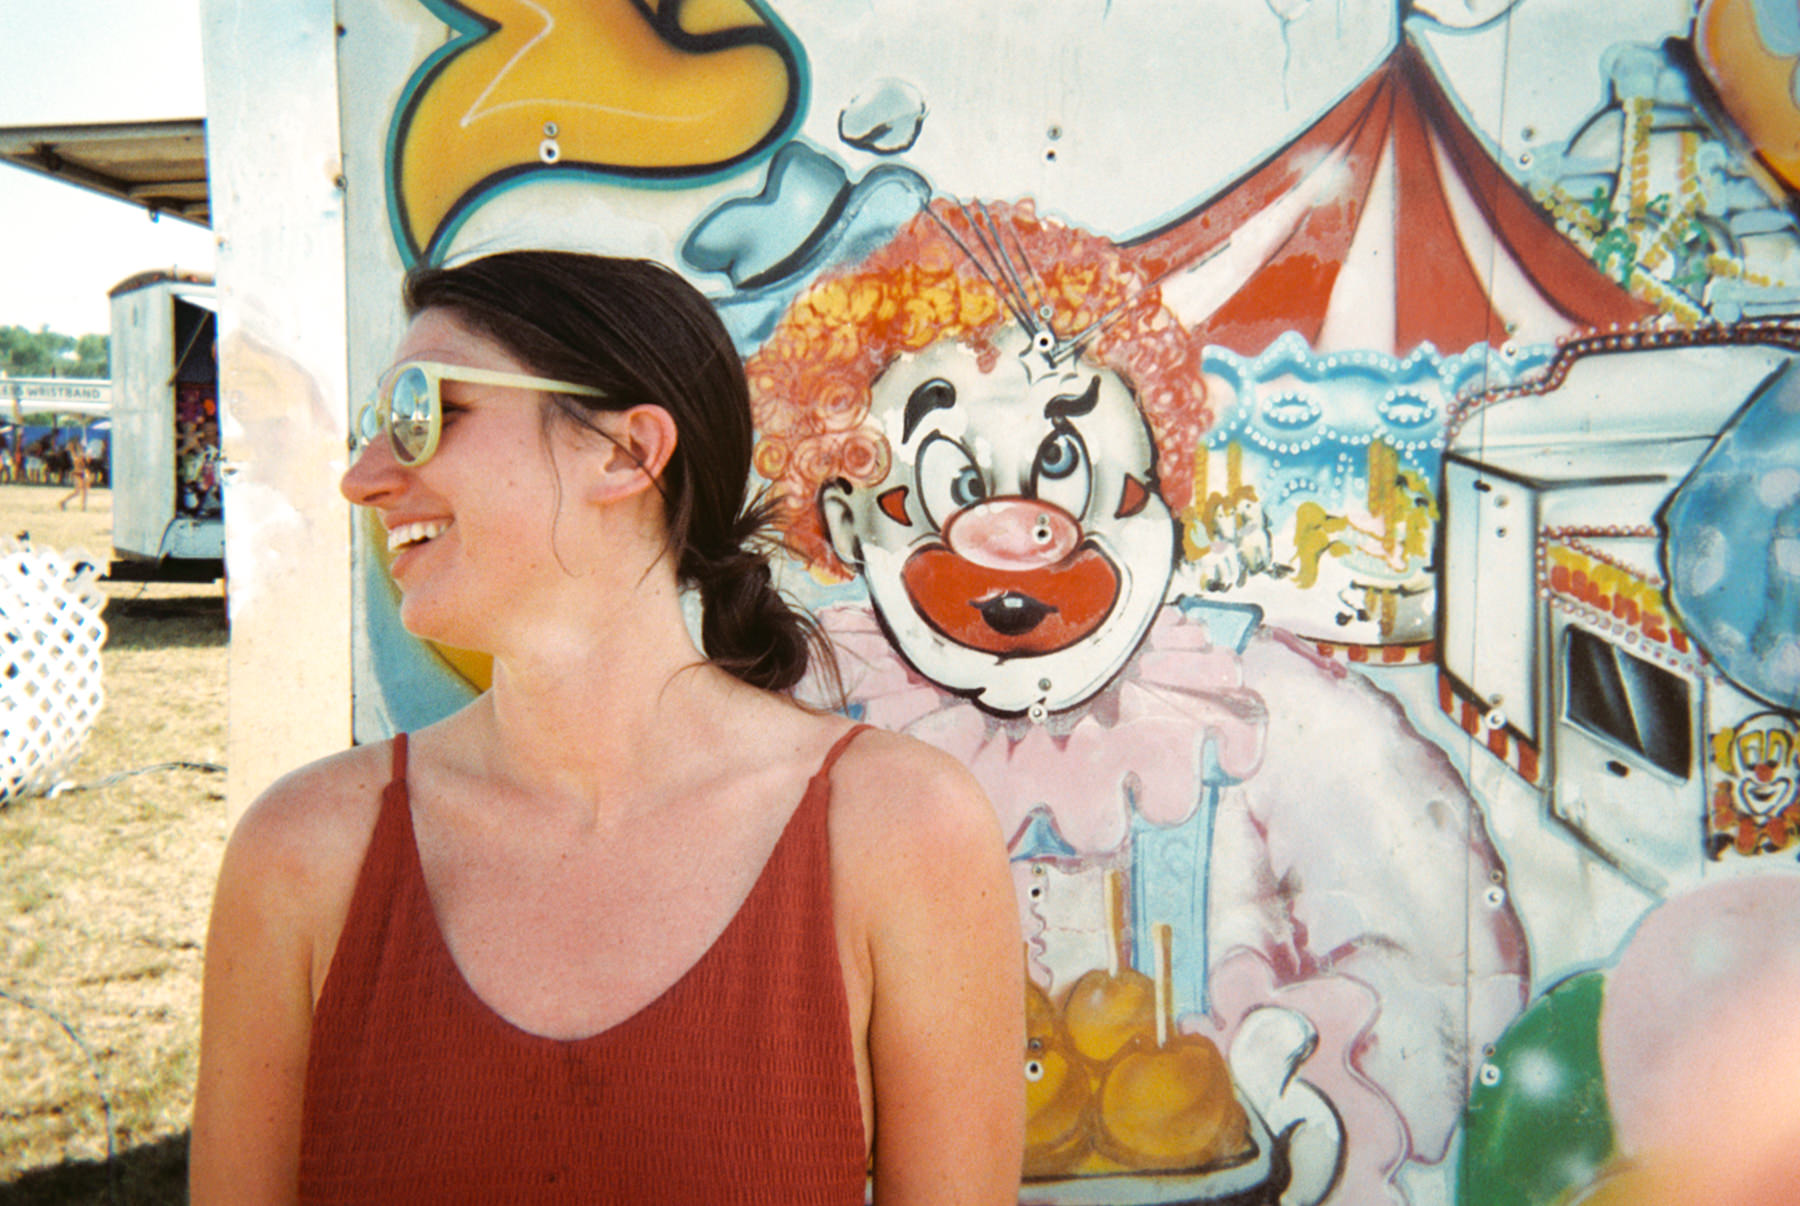 180728-kirby-gladstein-photograpy-Float-Fest-Fuji-disposable-037.jpg